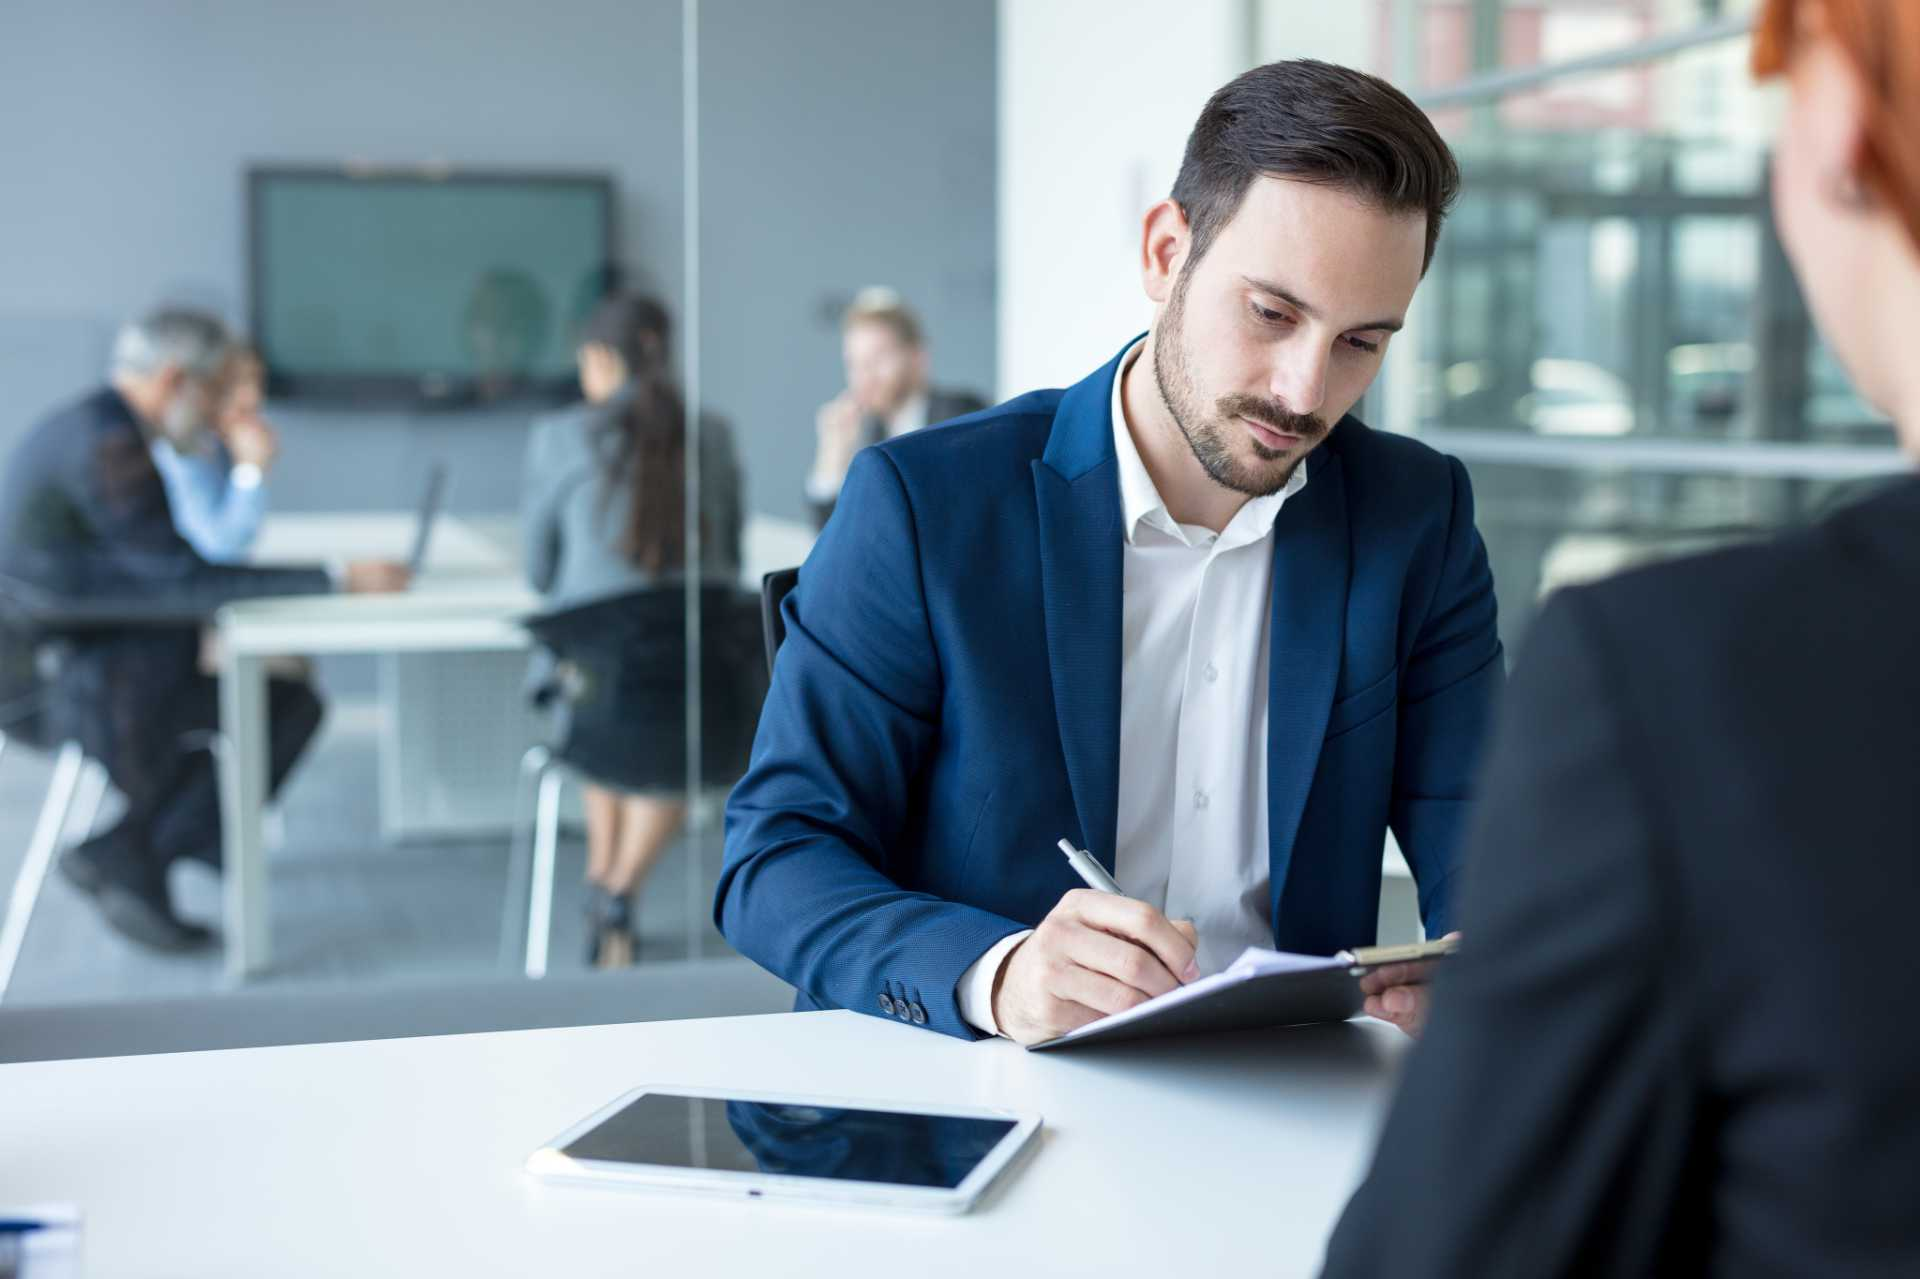 Businessman completing paperwork with meeting taking place behind him